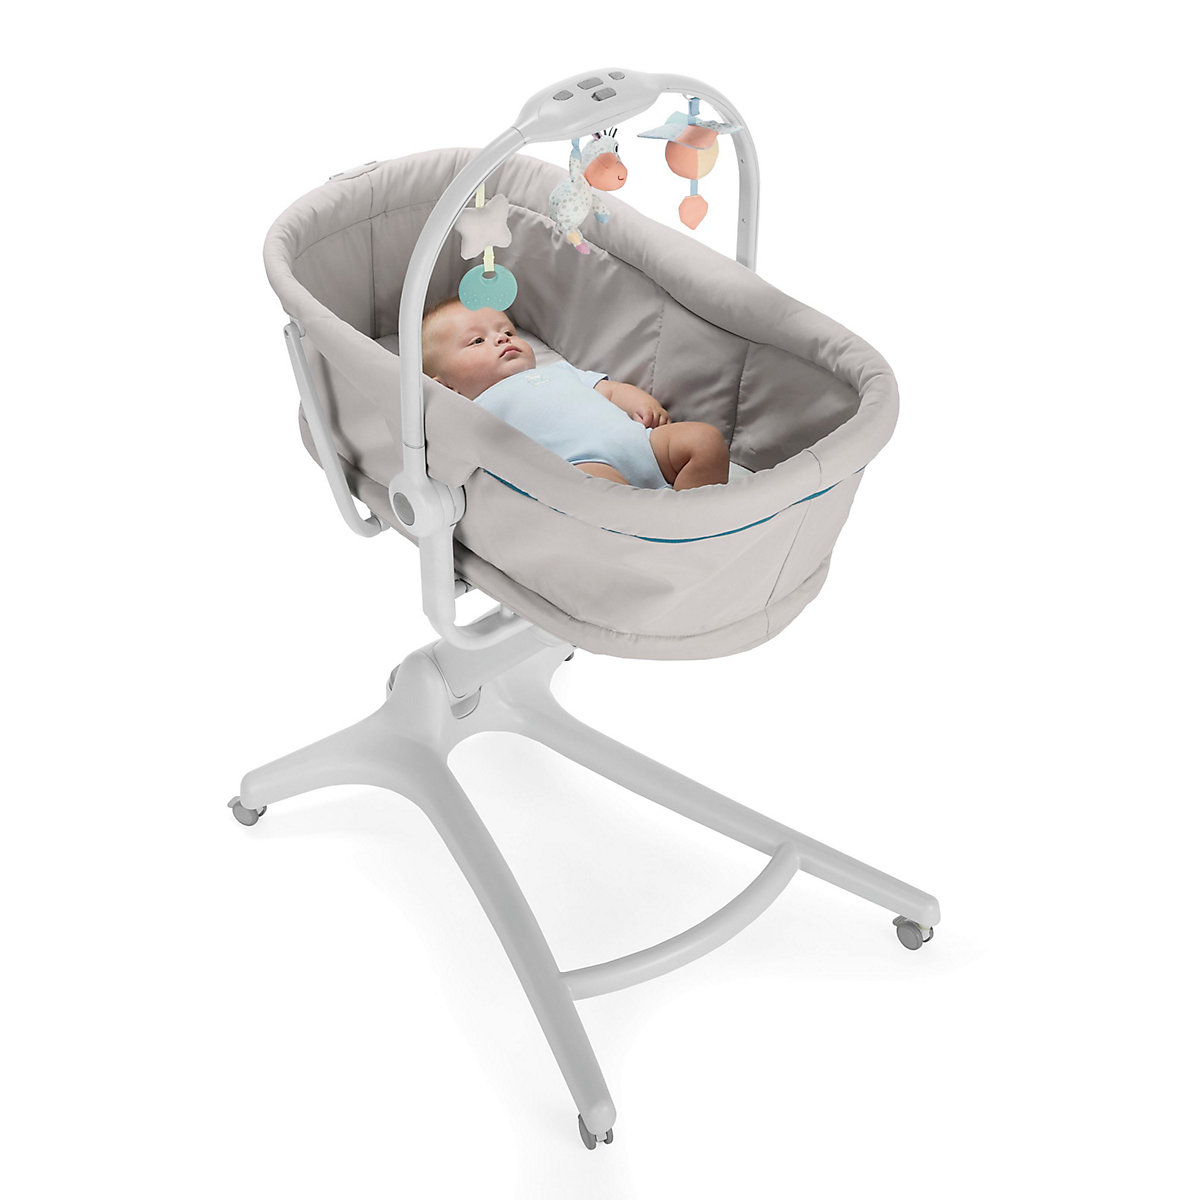 Chicco baby hug 4-in-1 - glacial *exclusive to mothercare*